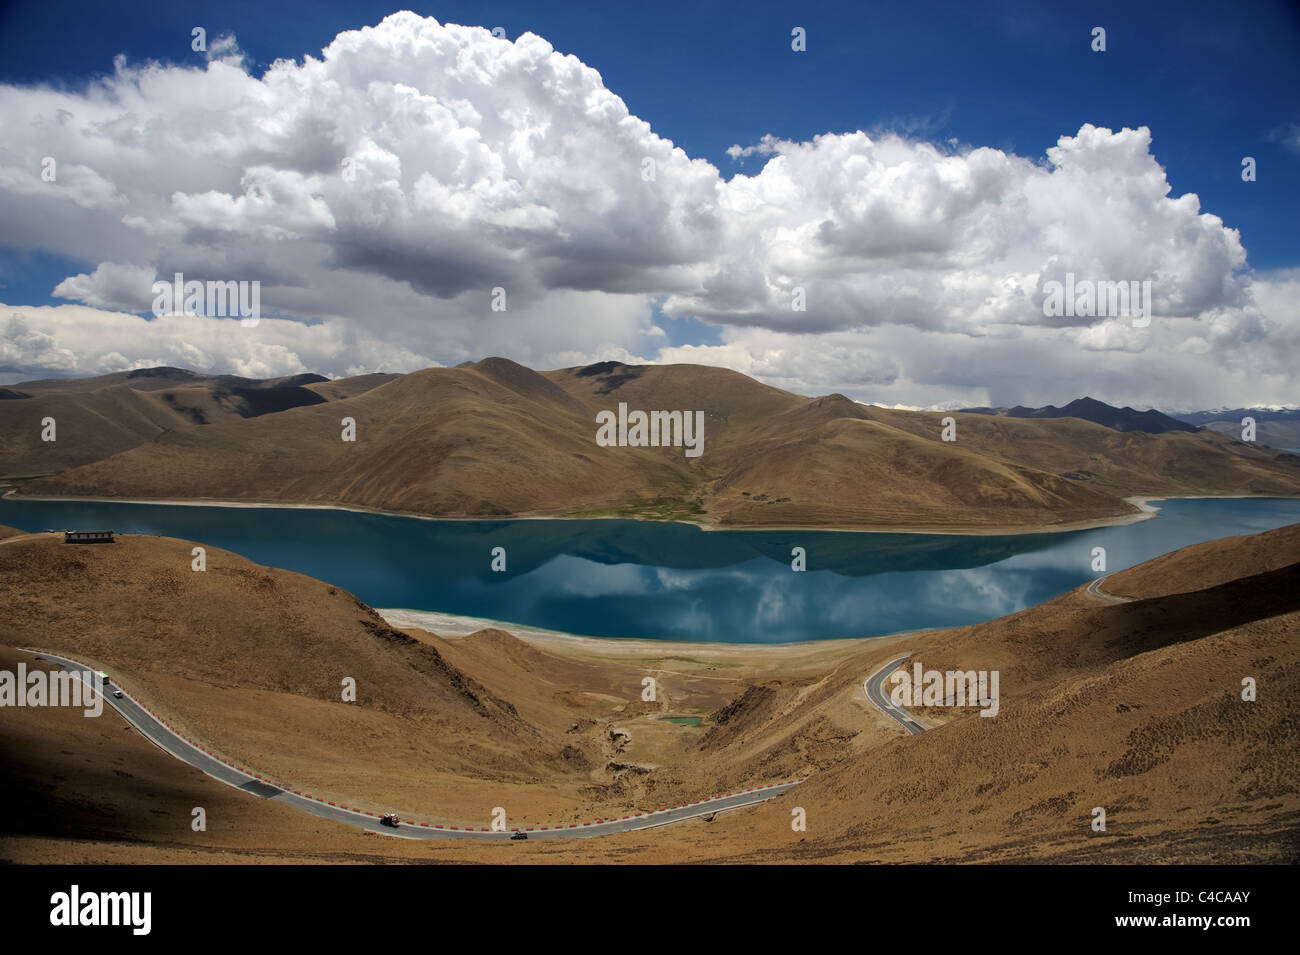 Landscape with road through the Himalaya mountains in Tibet near a lake - Stock Image